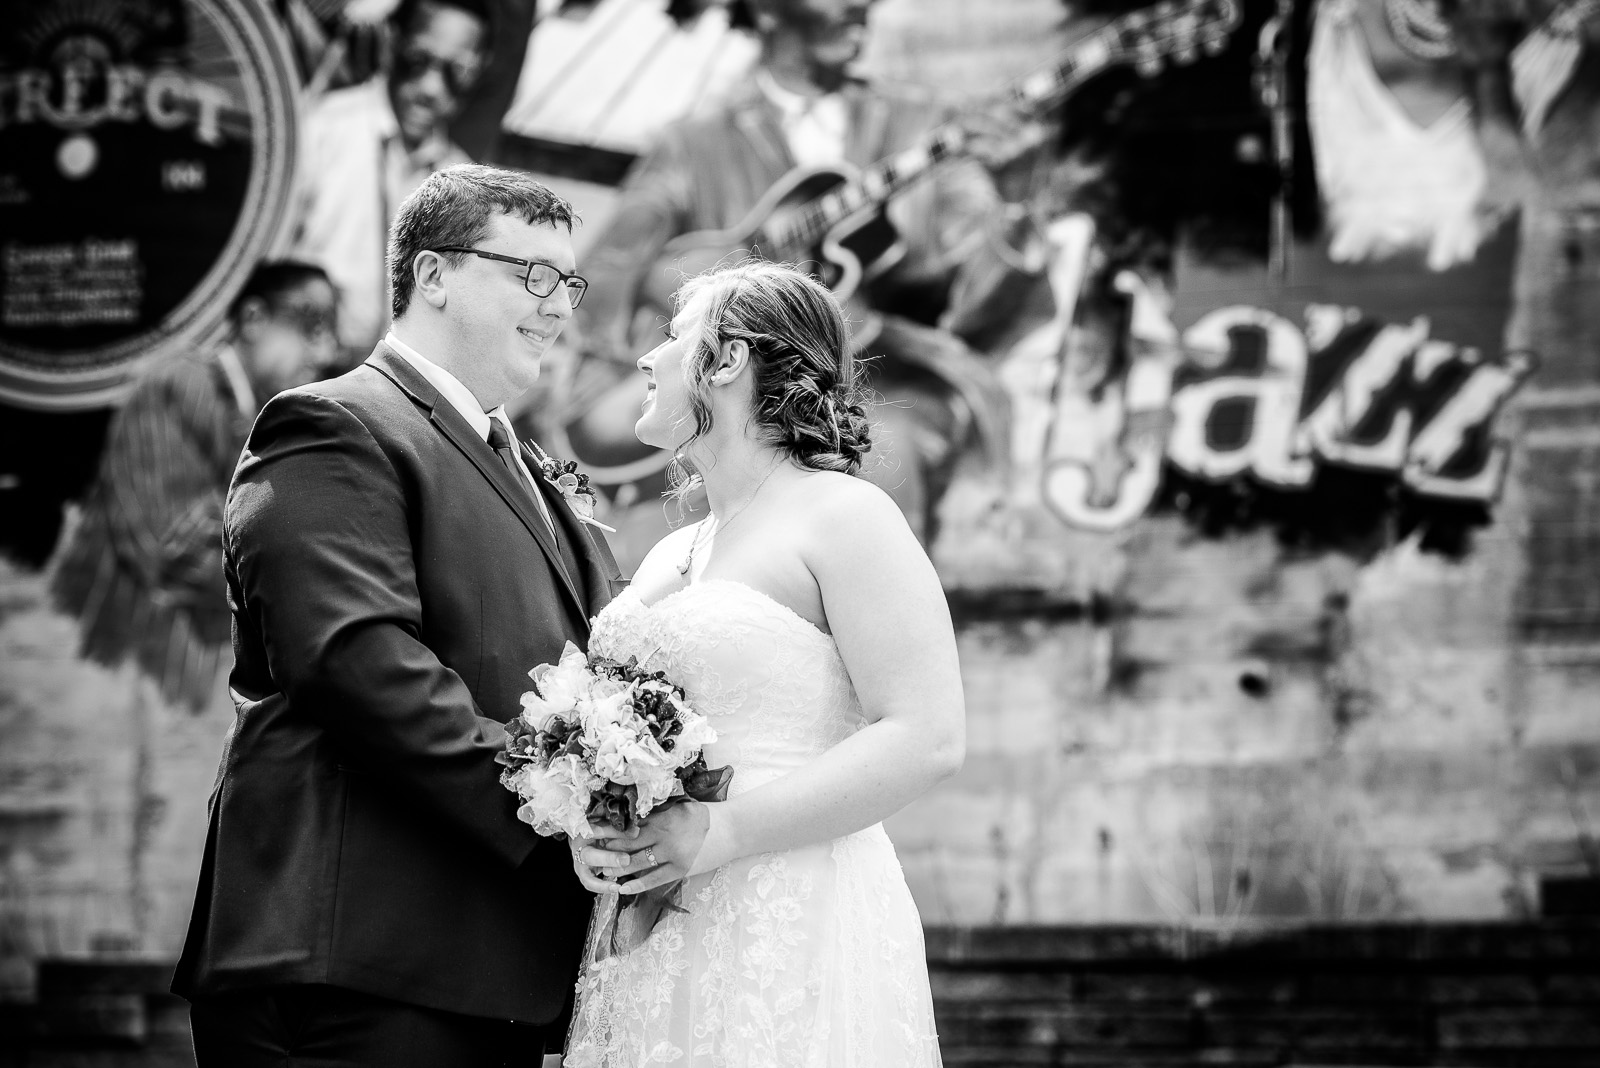 Eric_and_Christy_Photography_Blog_2018_Portraits-9